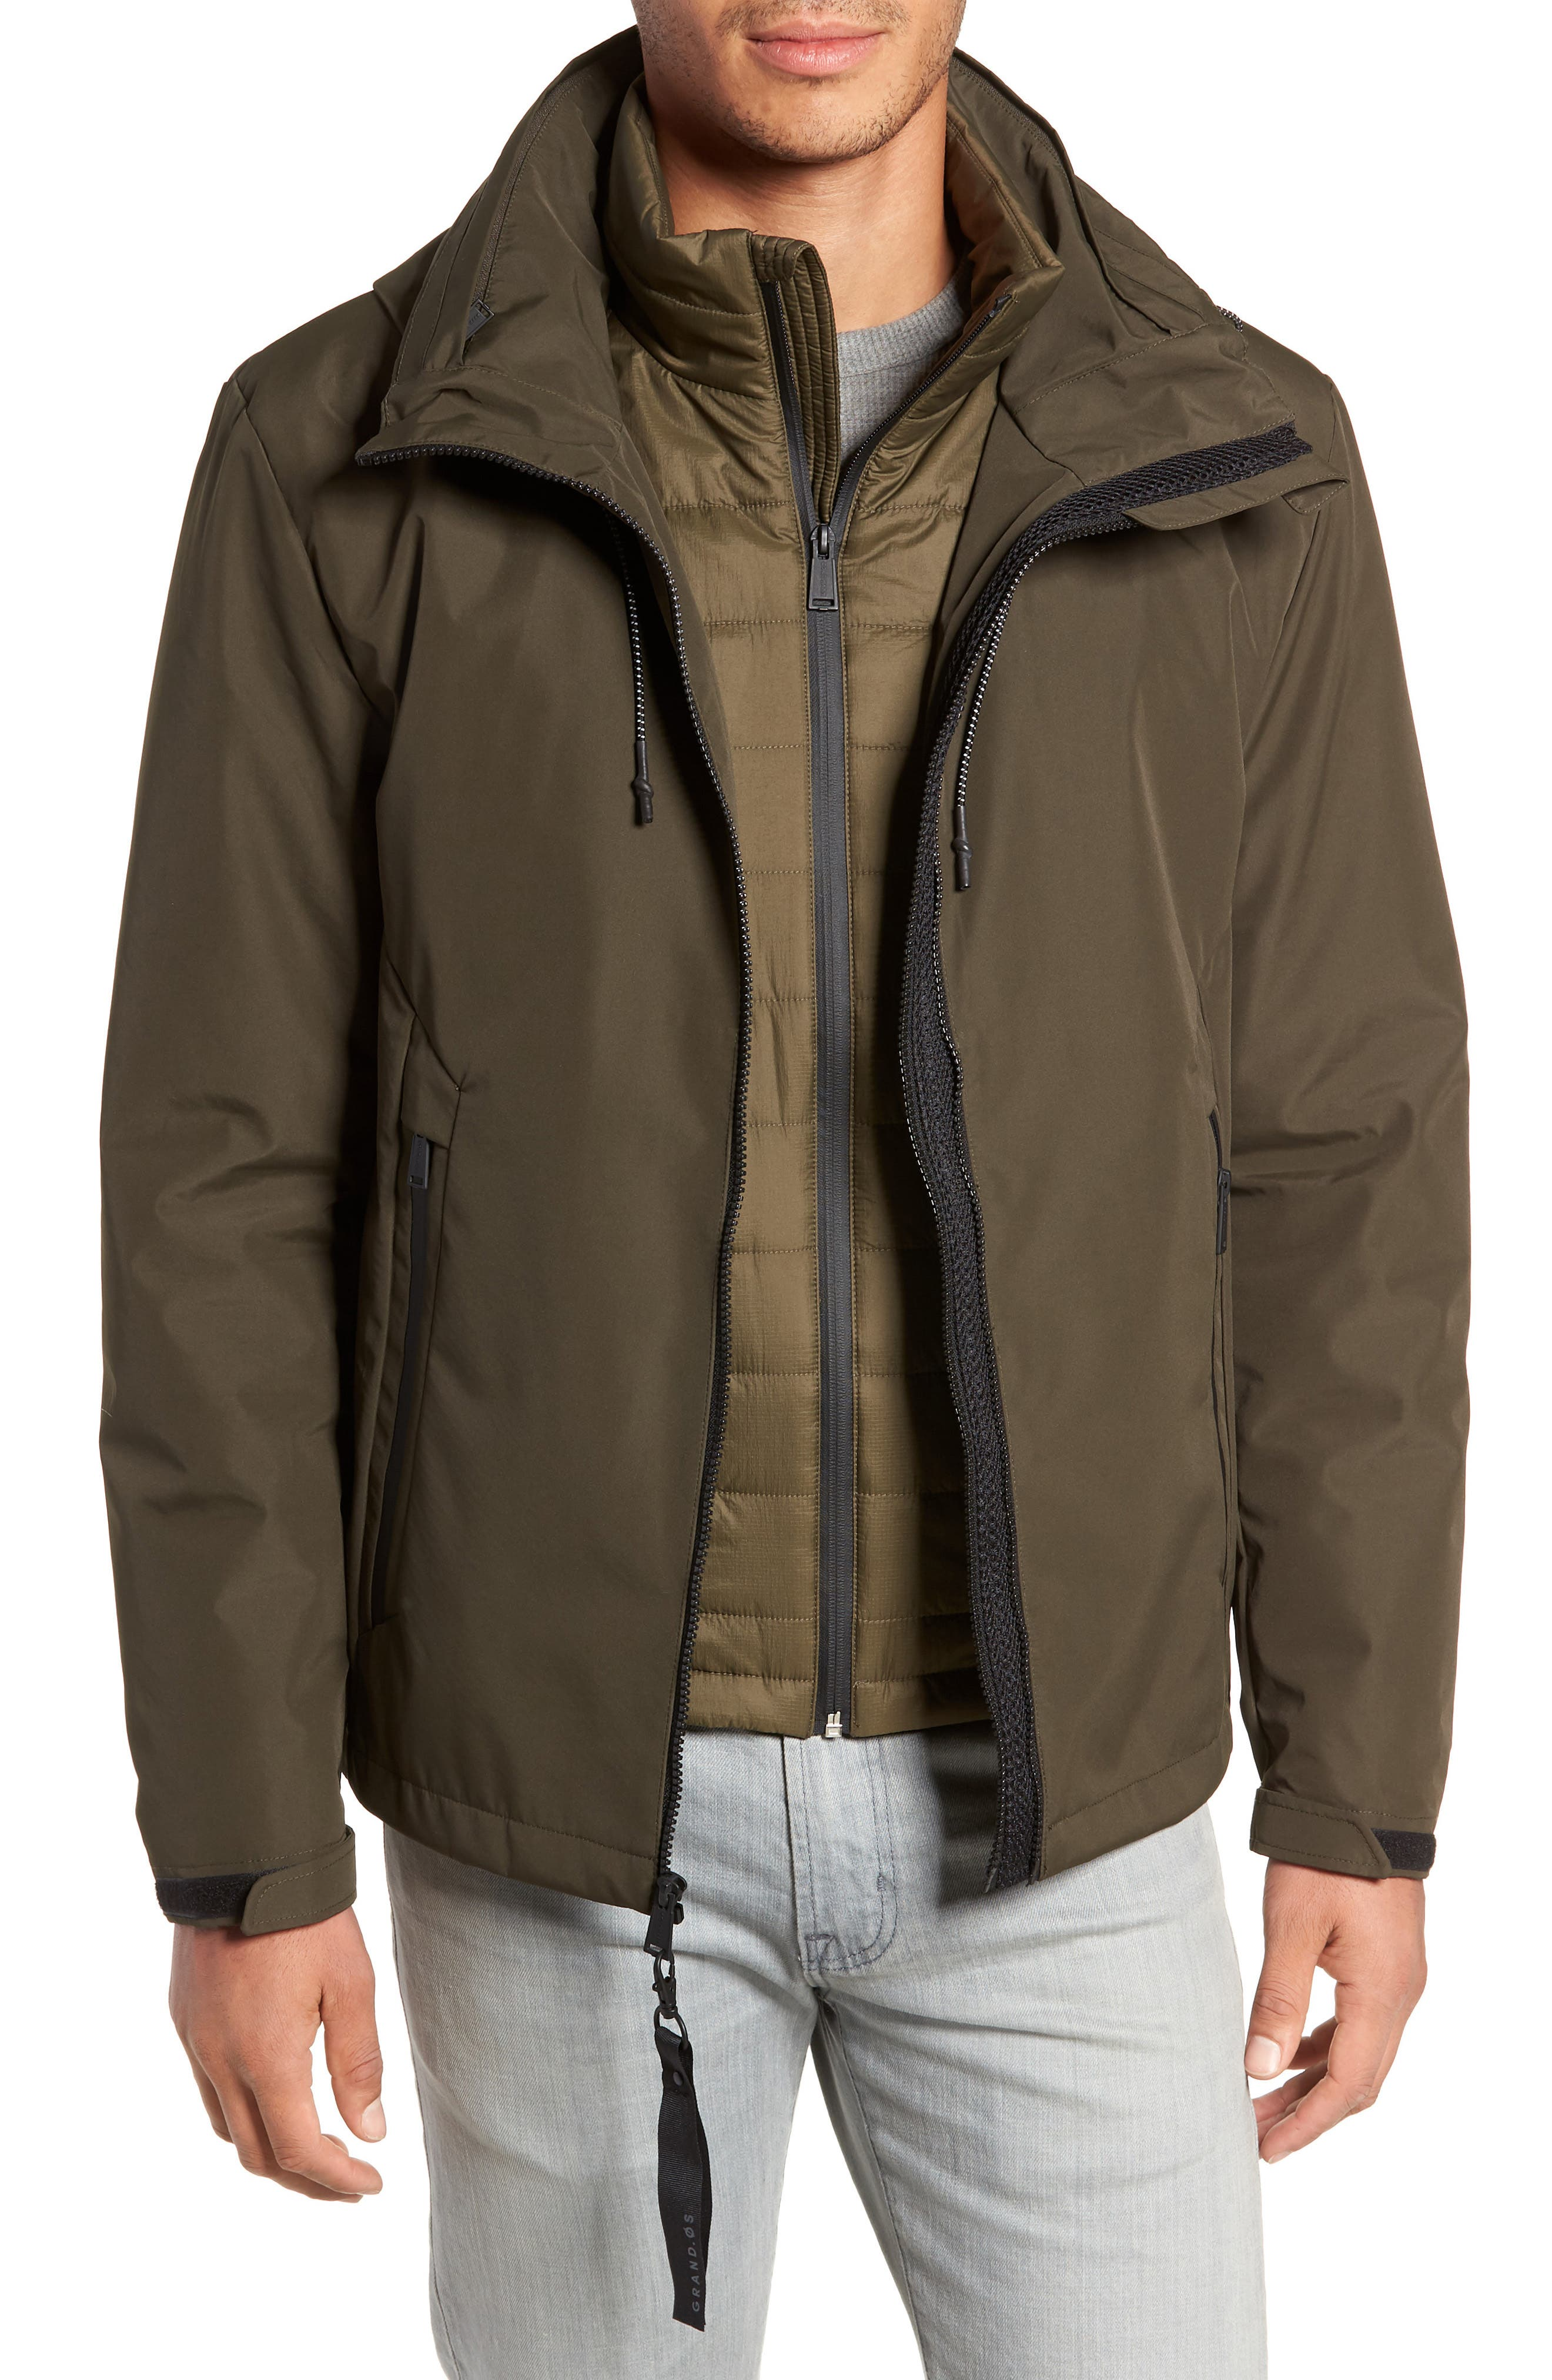 3-in-1 Rain Jacket,                         Main,                         color, OLIVE